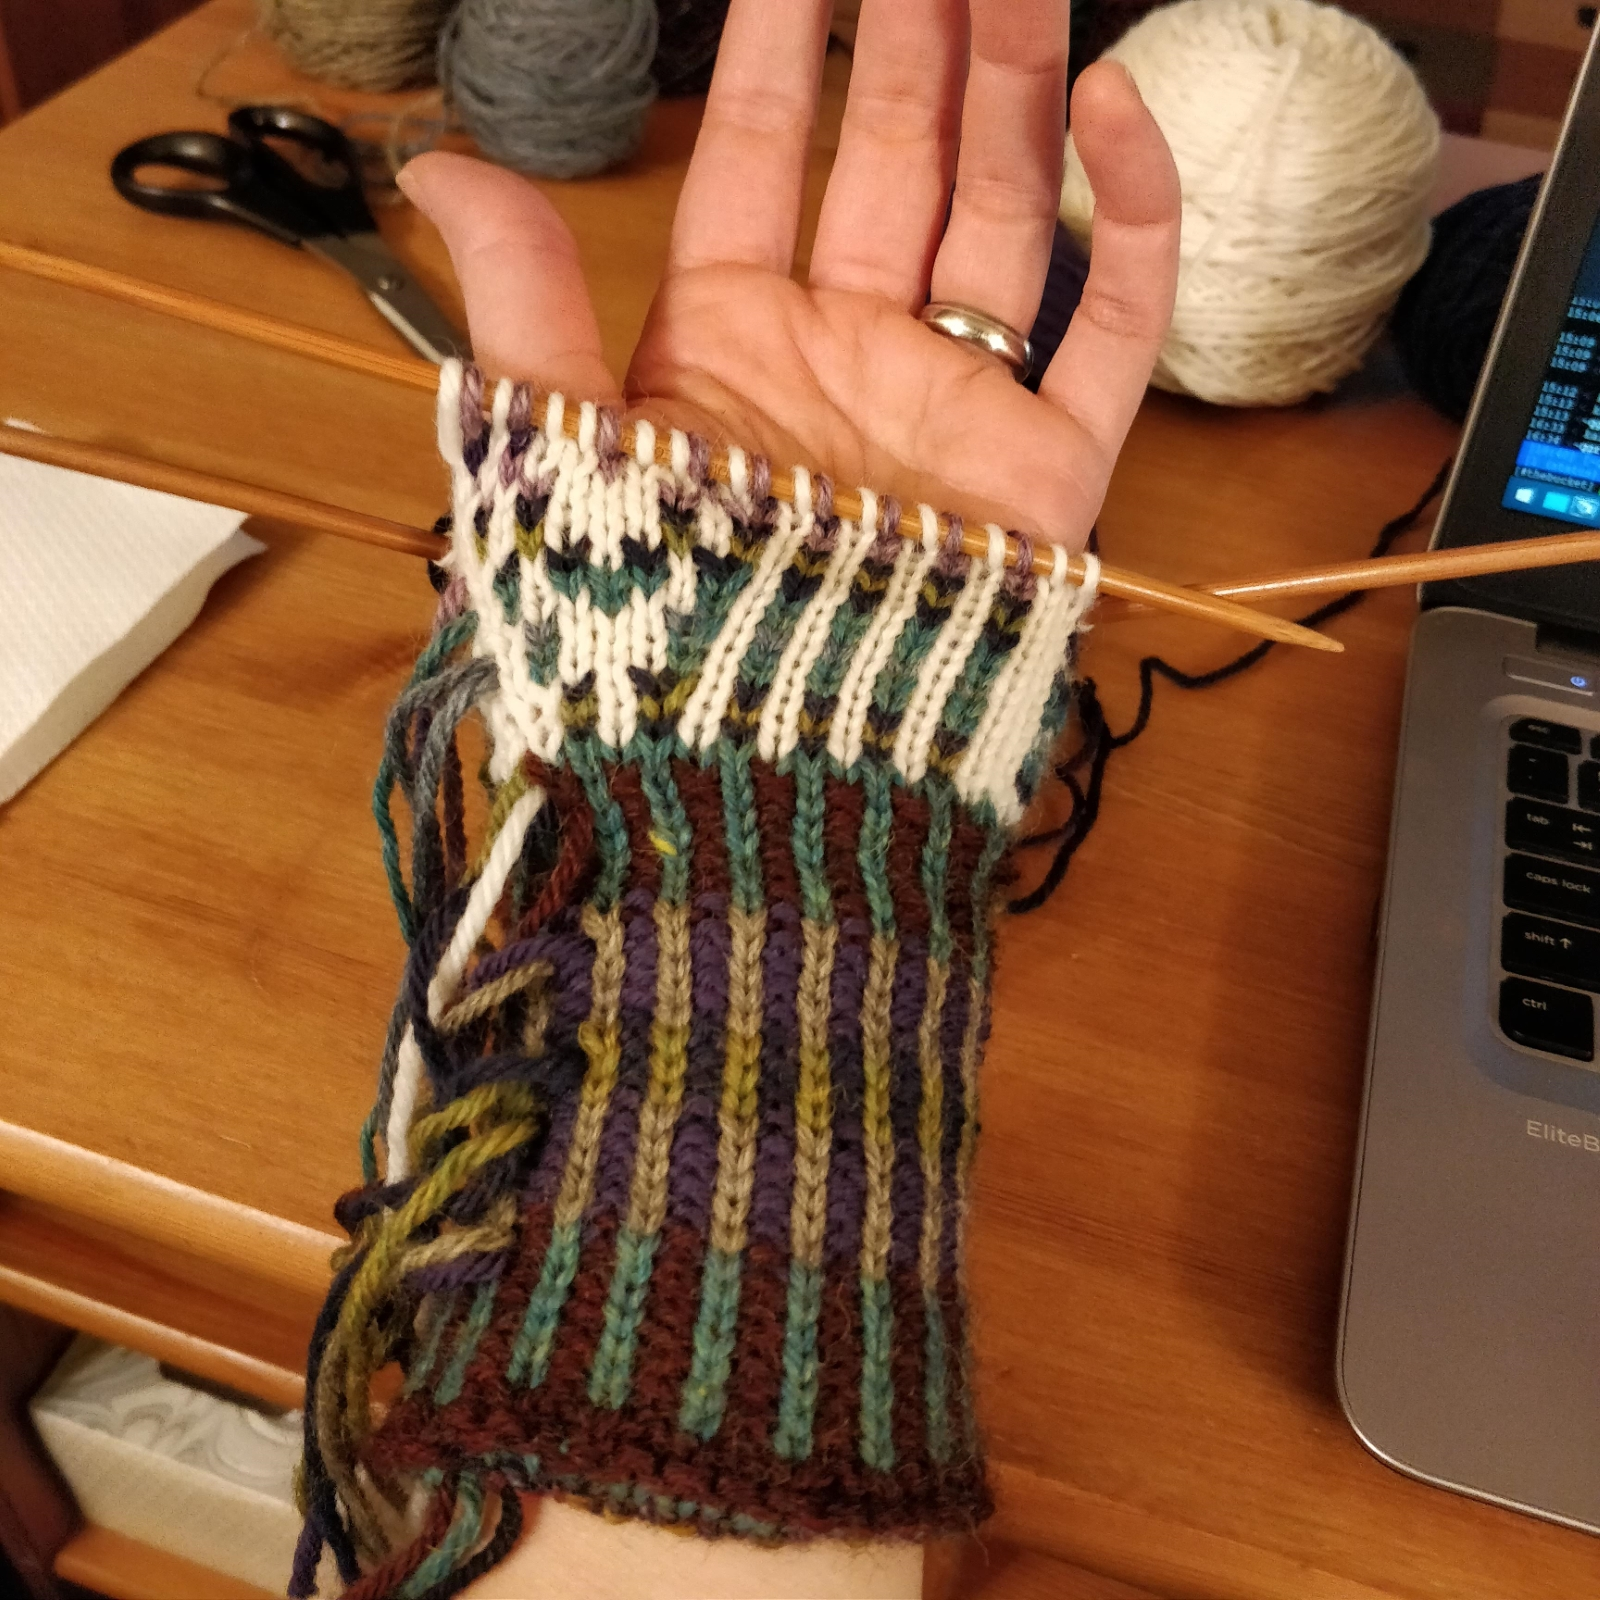 The palm side of a colourwork mitten in progress, showing the start of a thumb gusset.